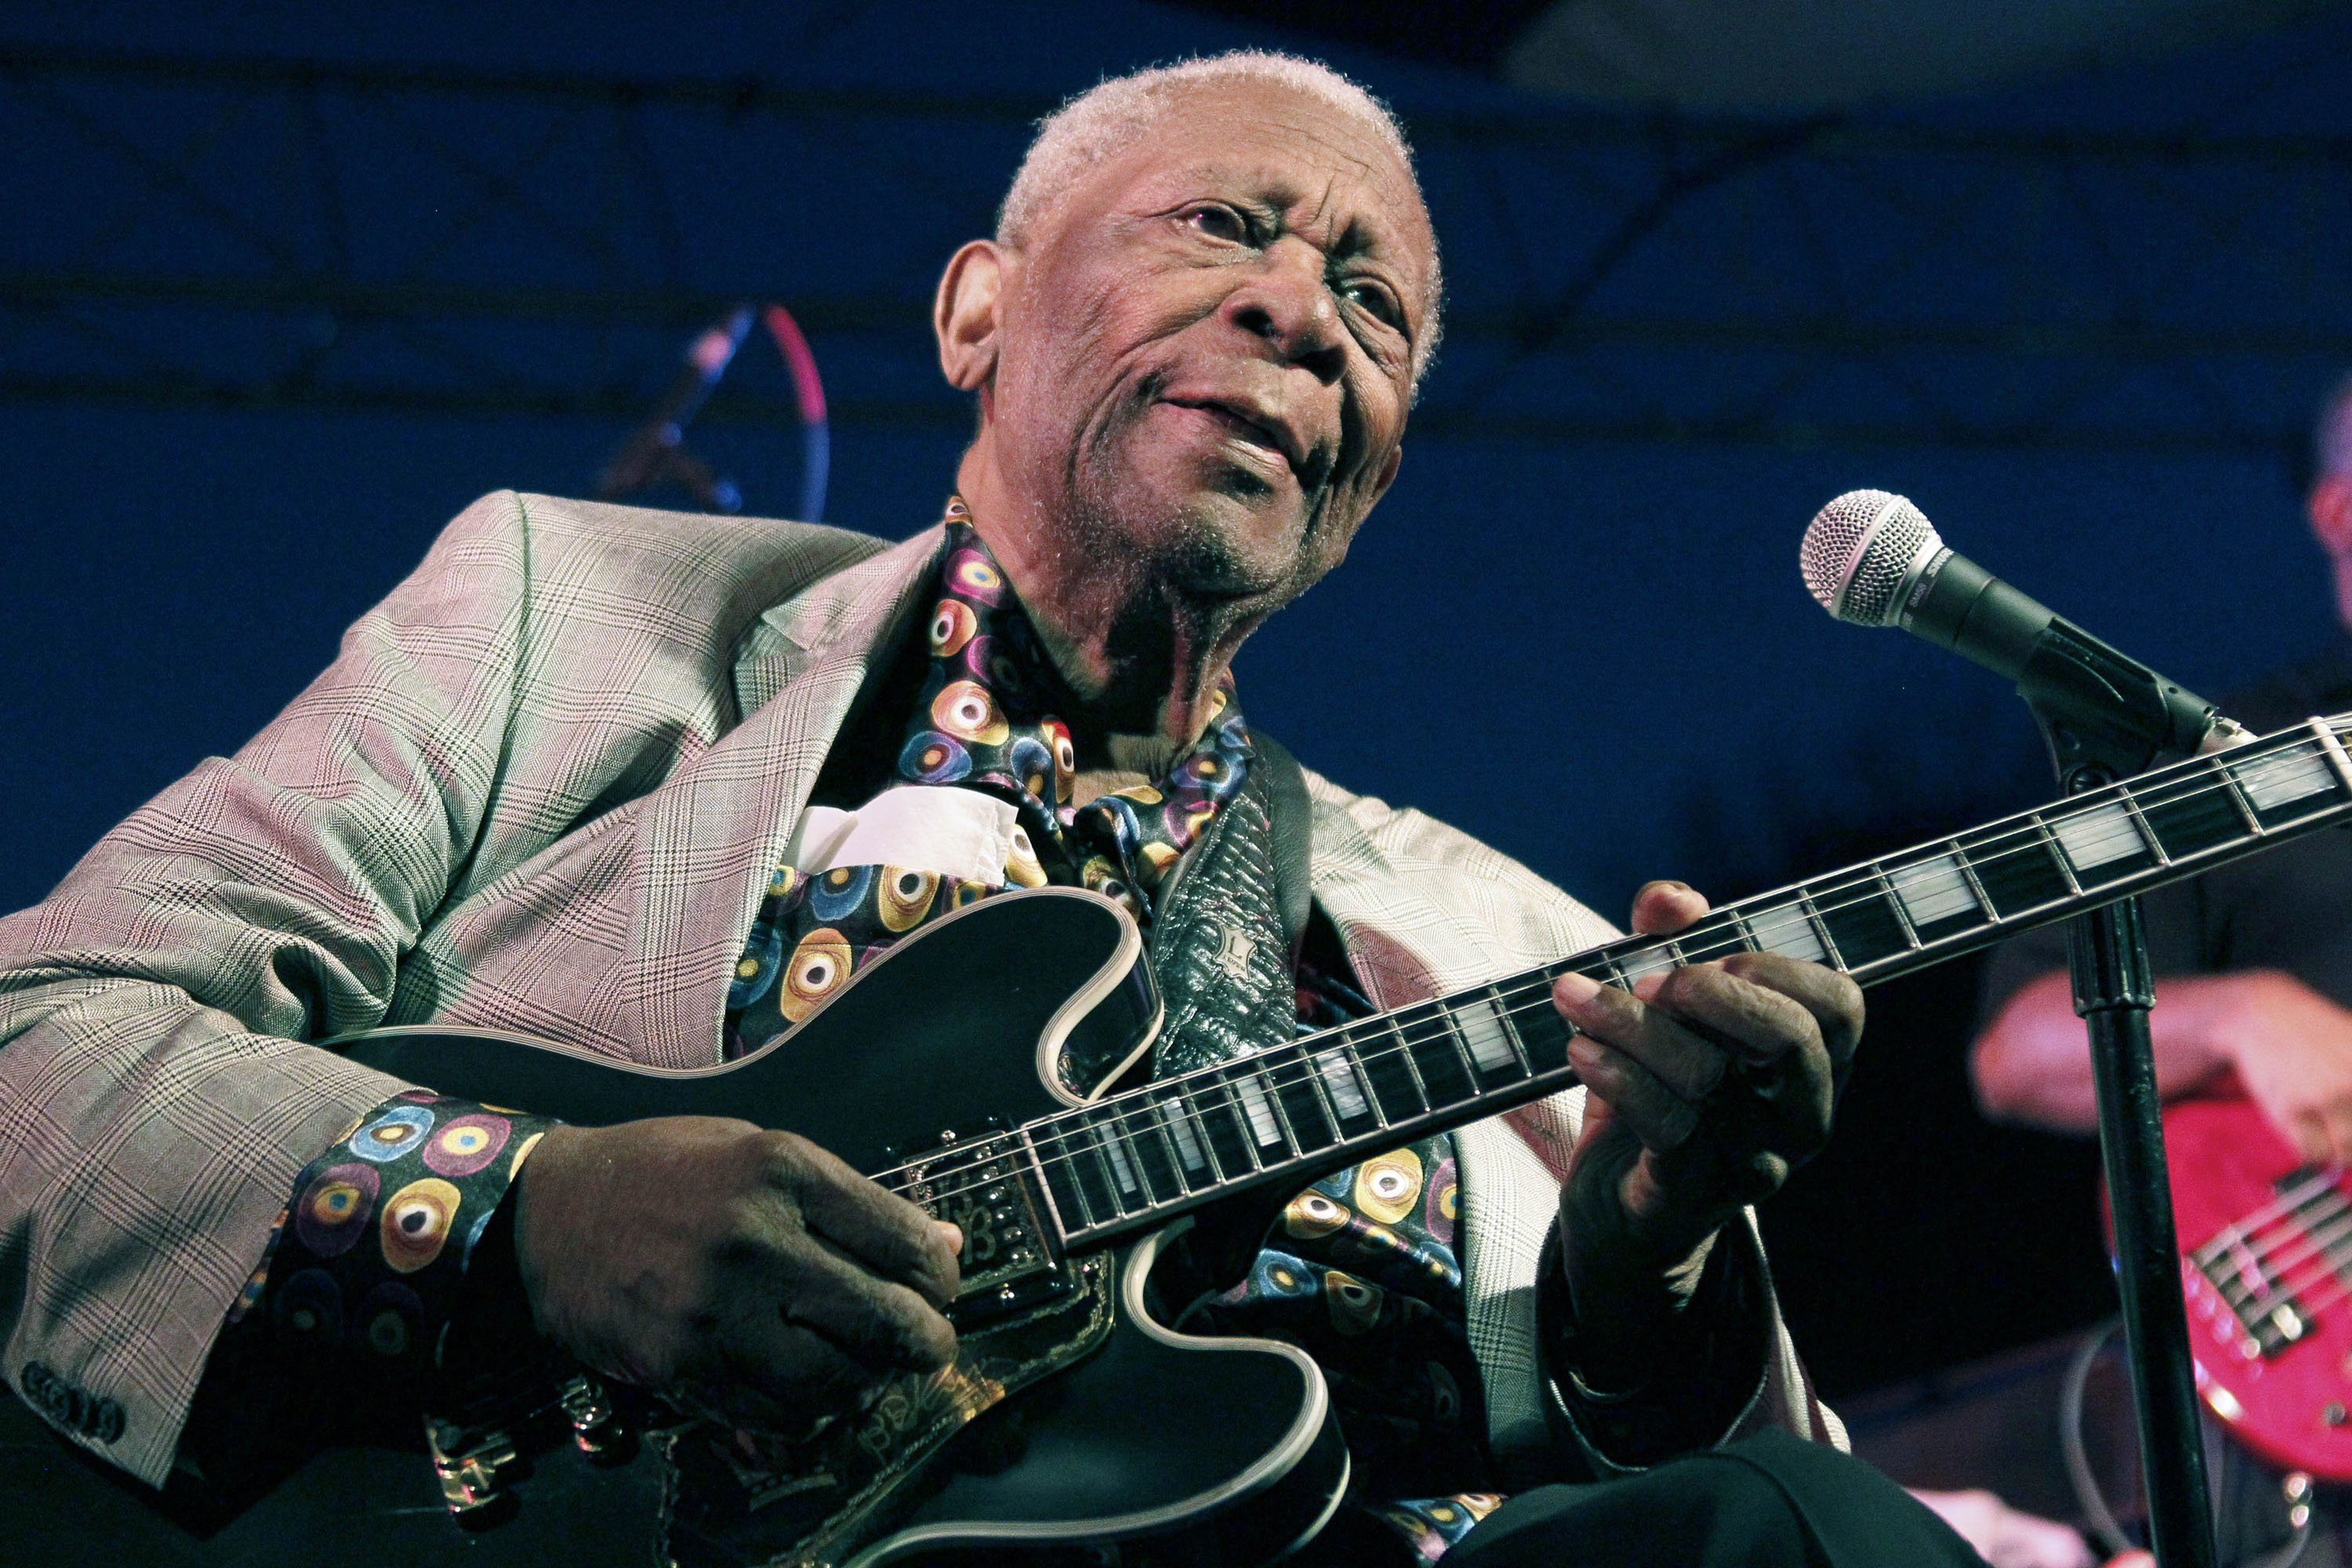 B.B. King performs in Indianola, Miss., on Aug. 22, 2012